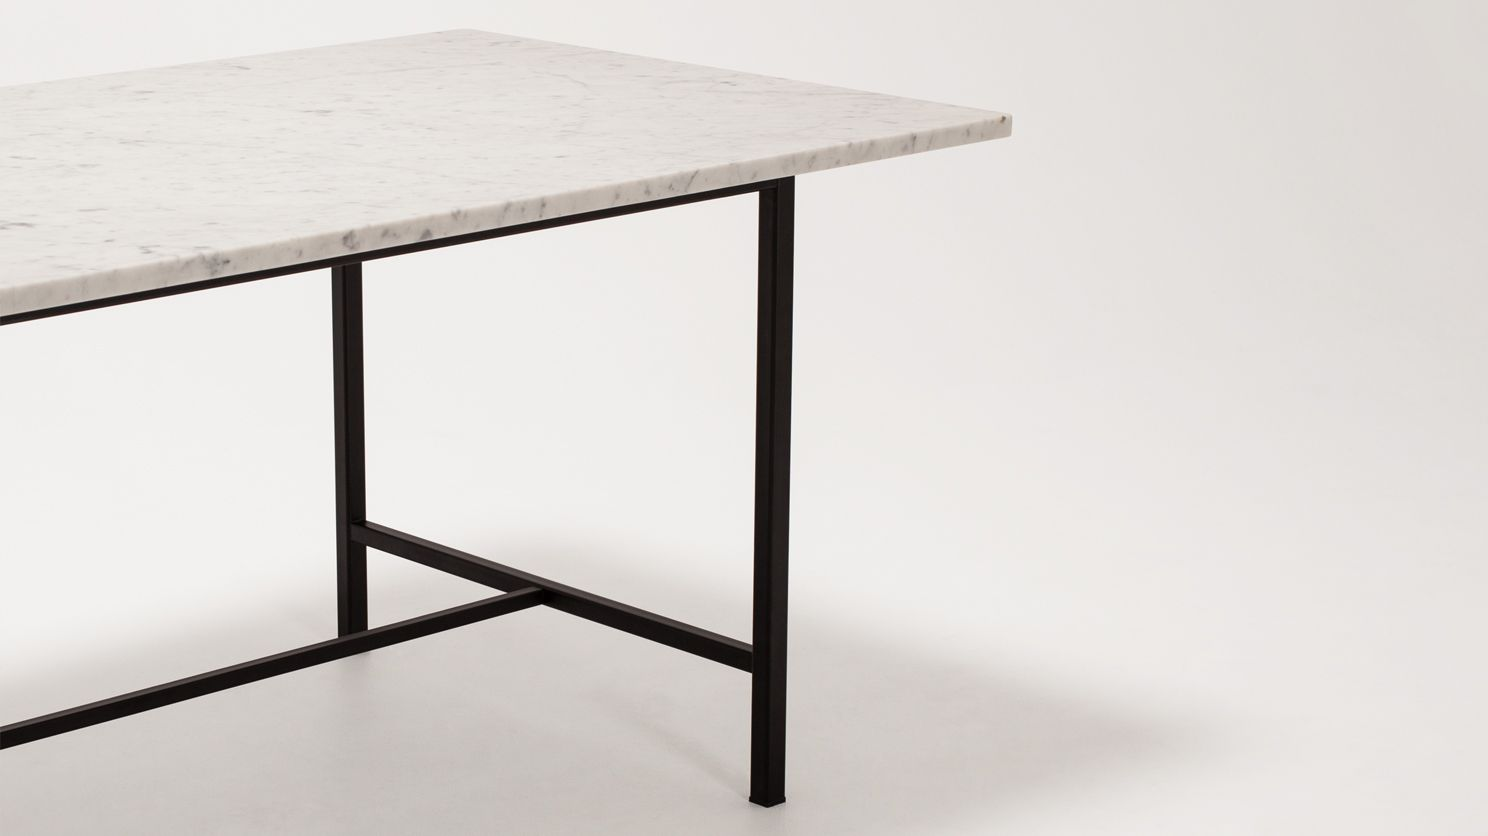 Modern Marble Top Dining Table - Kendall custom dining table 66 marble top eq3 modern furniture